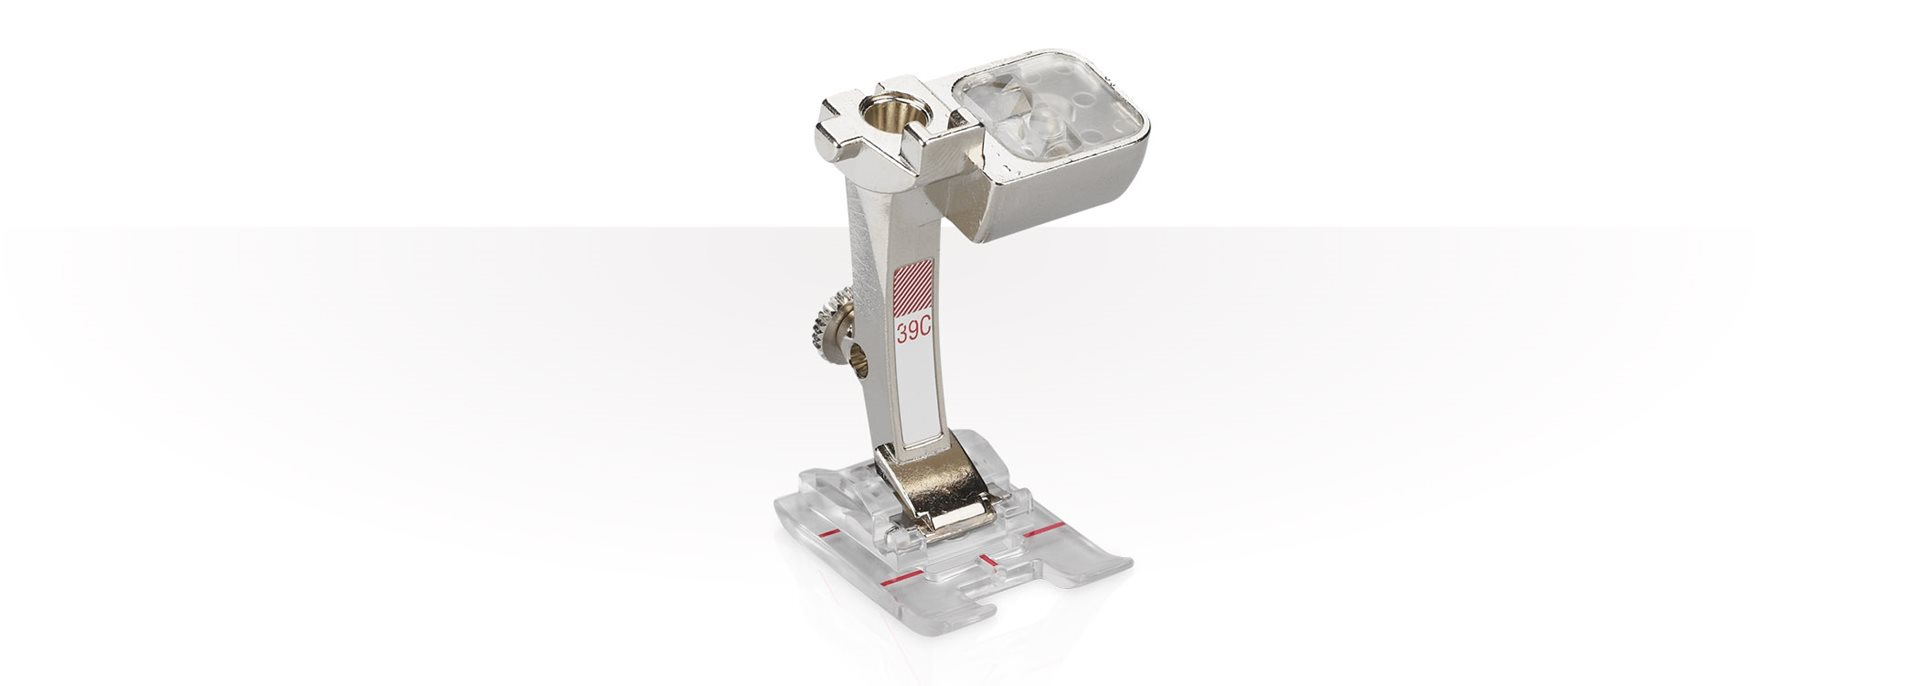 BERNINA Embroidery Foot with Clear Sole #39C